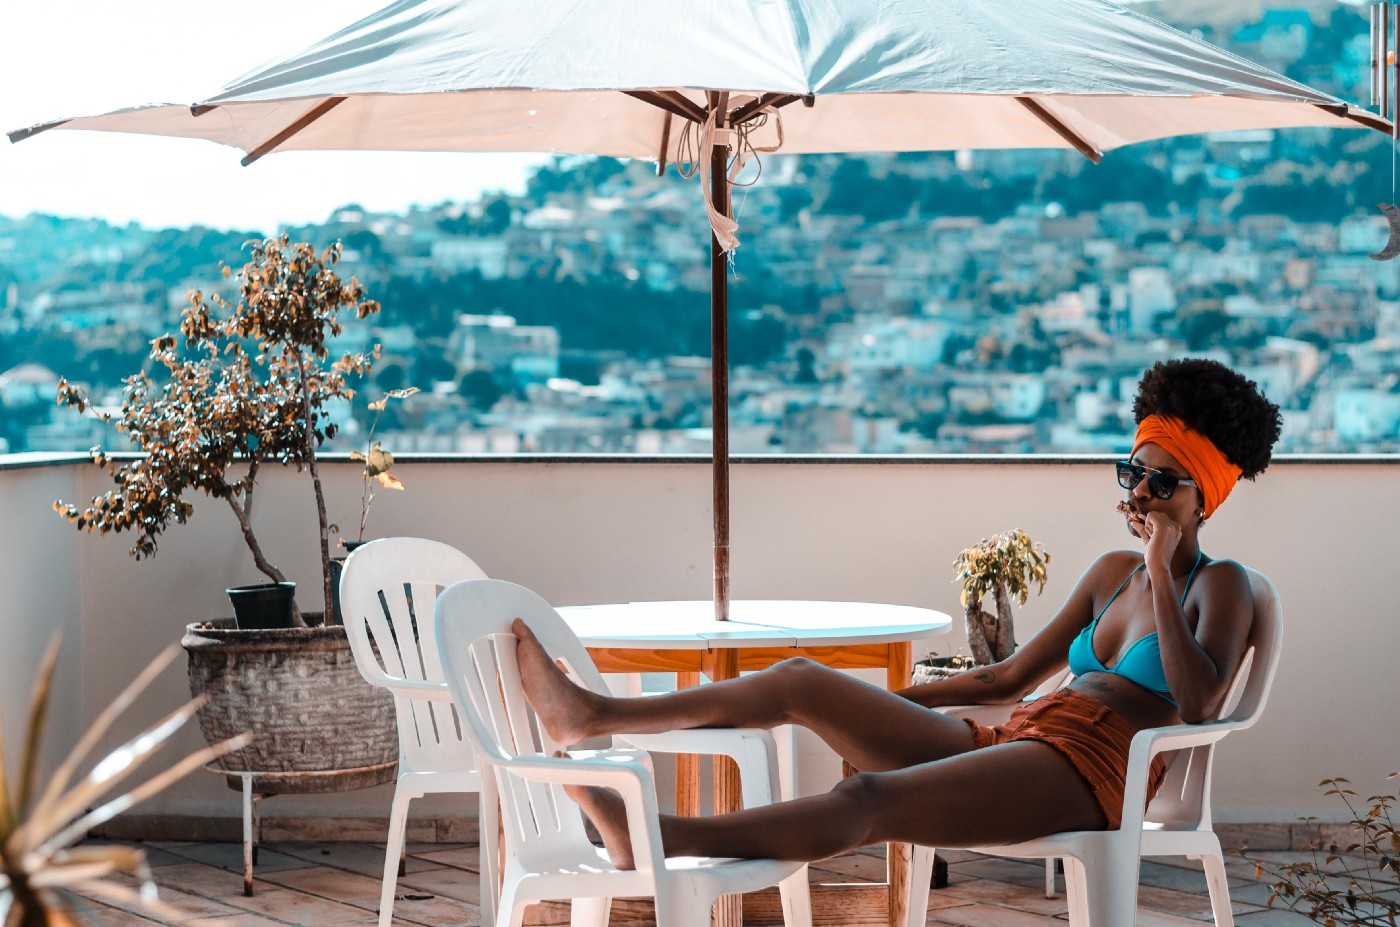 Black woman sitting at a table with her feet up, on a balcony